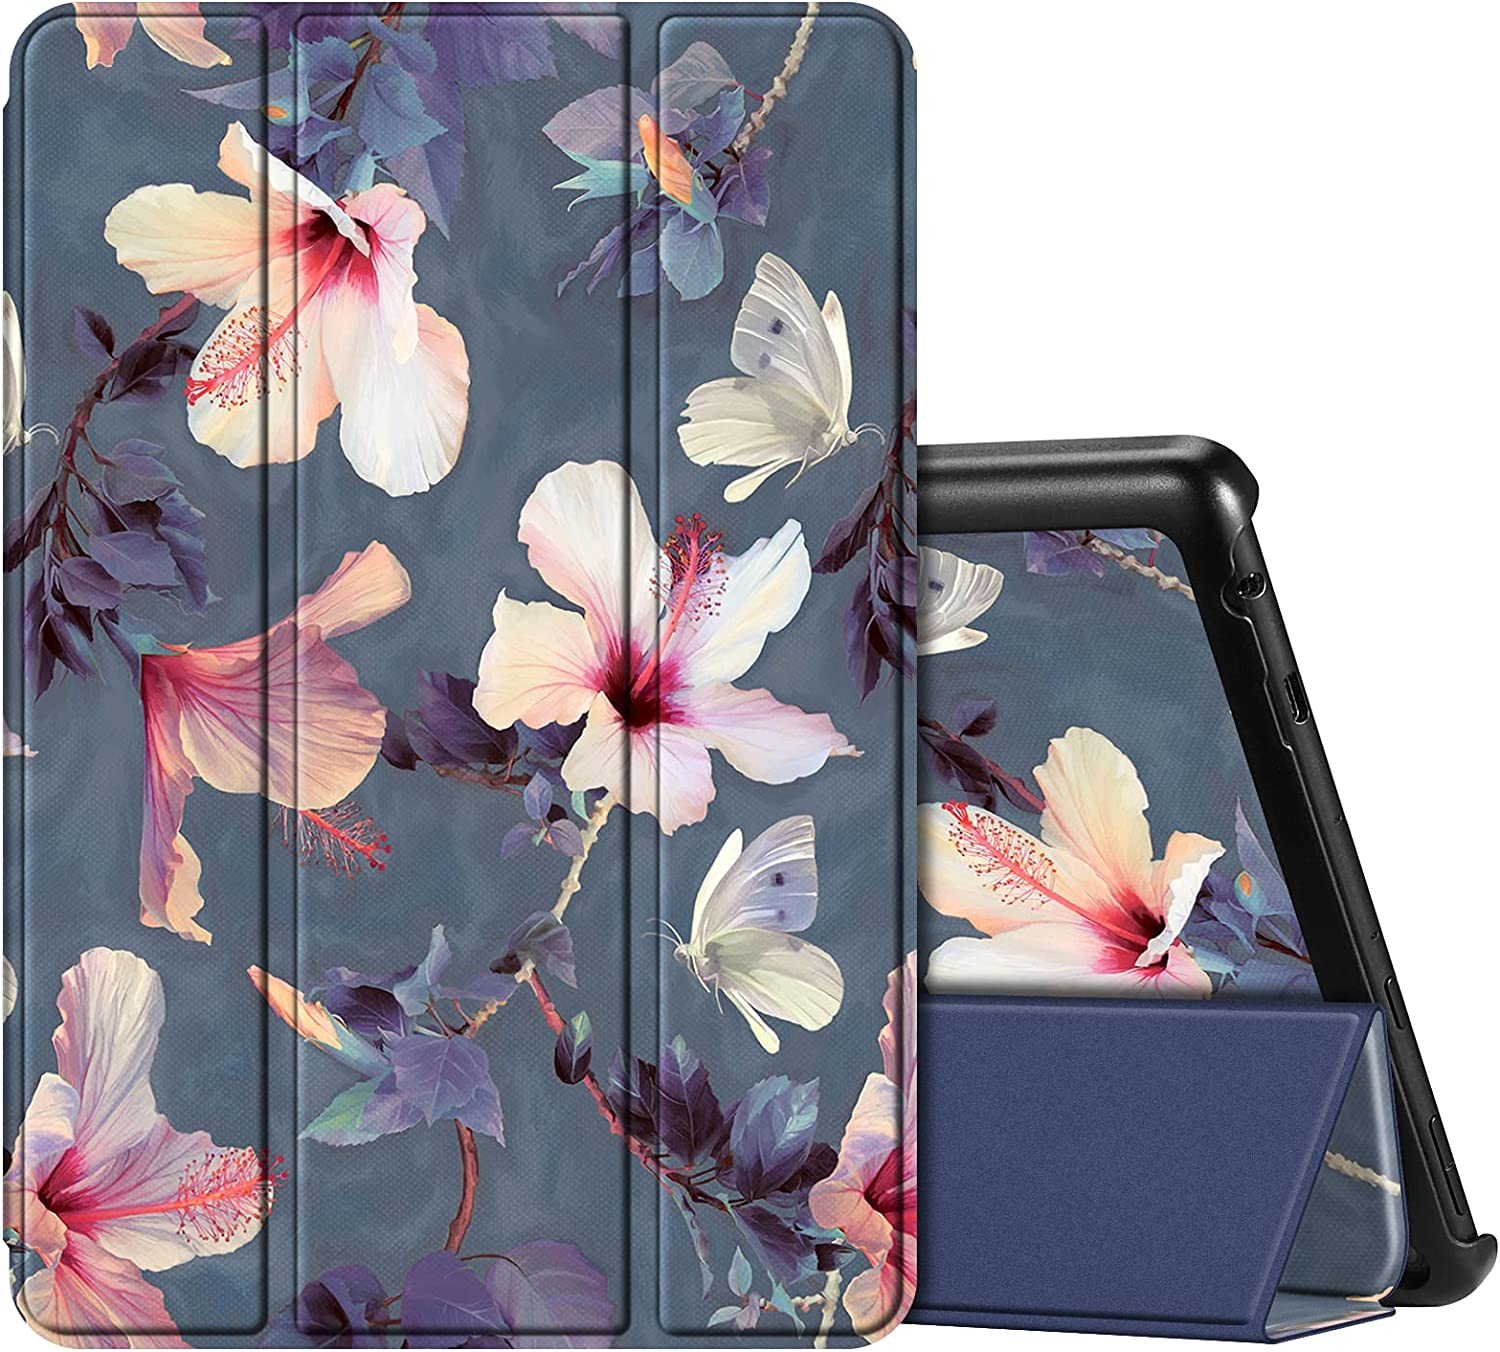 Fintie Case for All-New Amazon Fire HD 10 and Fire HD 10 Plus Tablet (Only Compatible with 11th Generation 2021 Release) - Ultra Lightweight Slim Shell Stand Cover Auto Wake/Sleep, Blooming Hibiscus